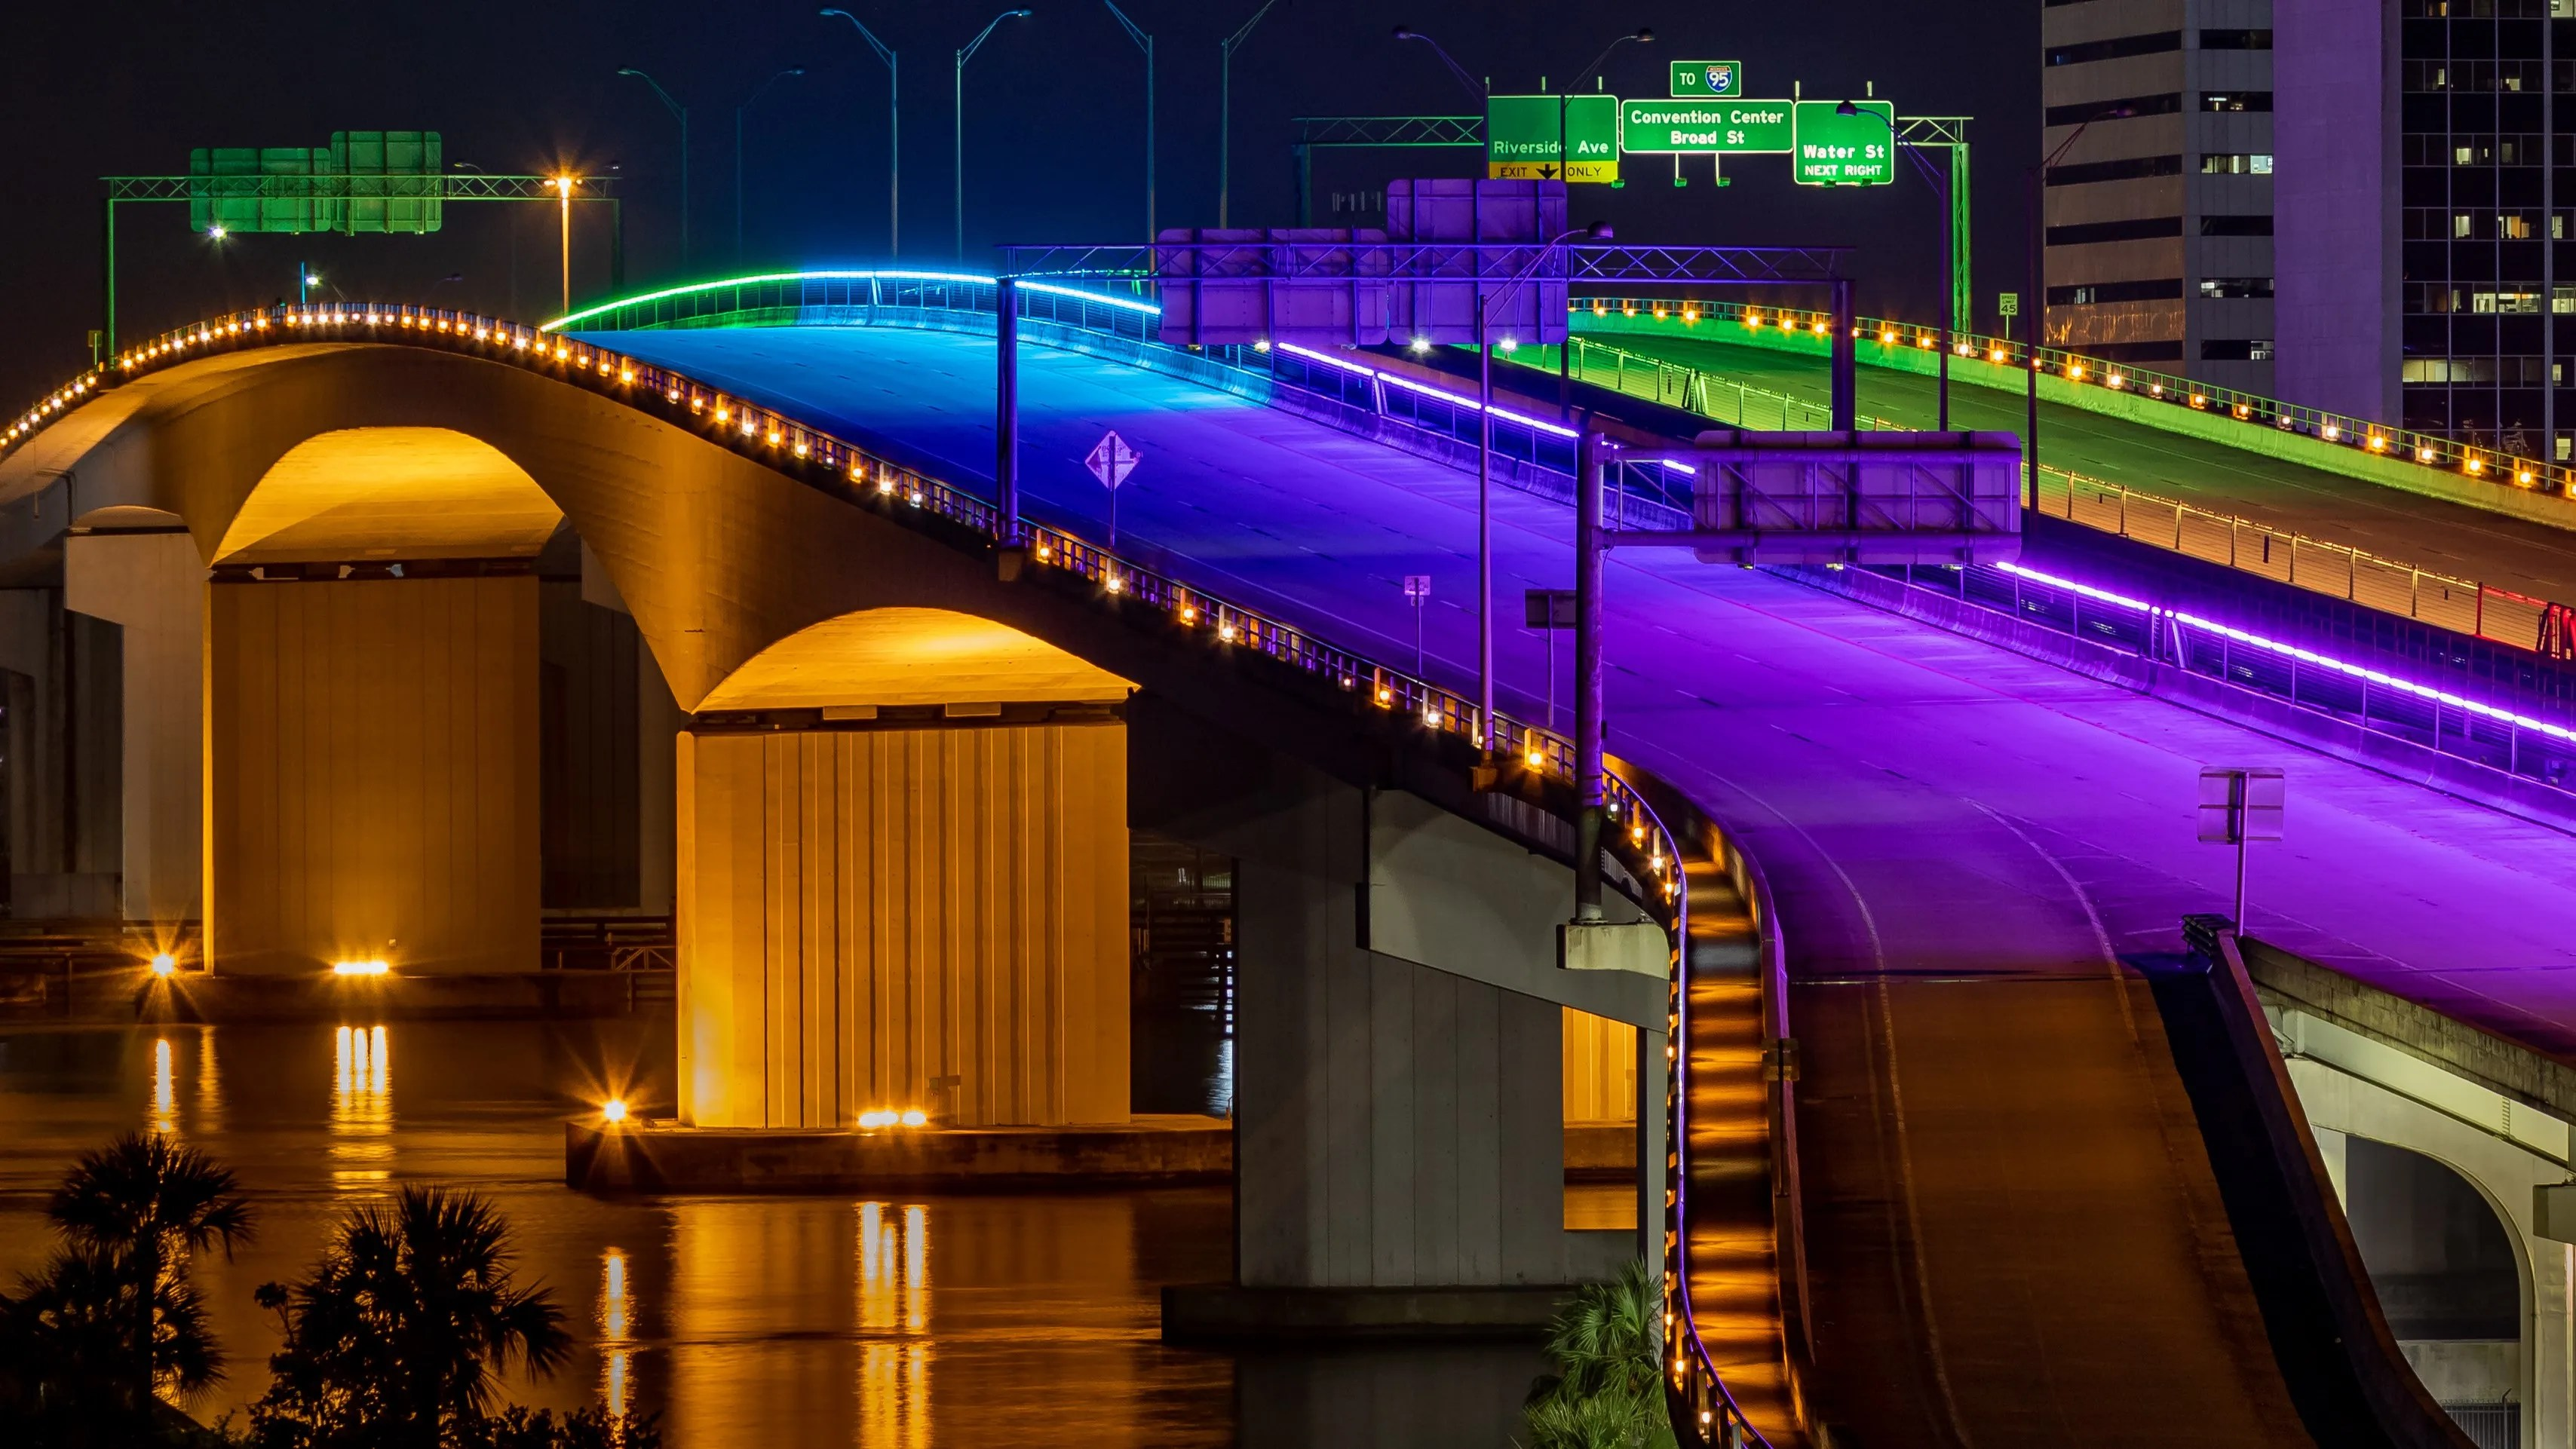 A close-up of Monday's rainbow lighting on the Jacksonville Transportation Authority's Acosta Bridge to honor Pride Month.